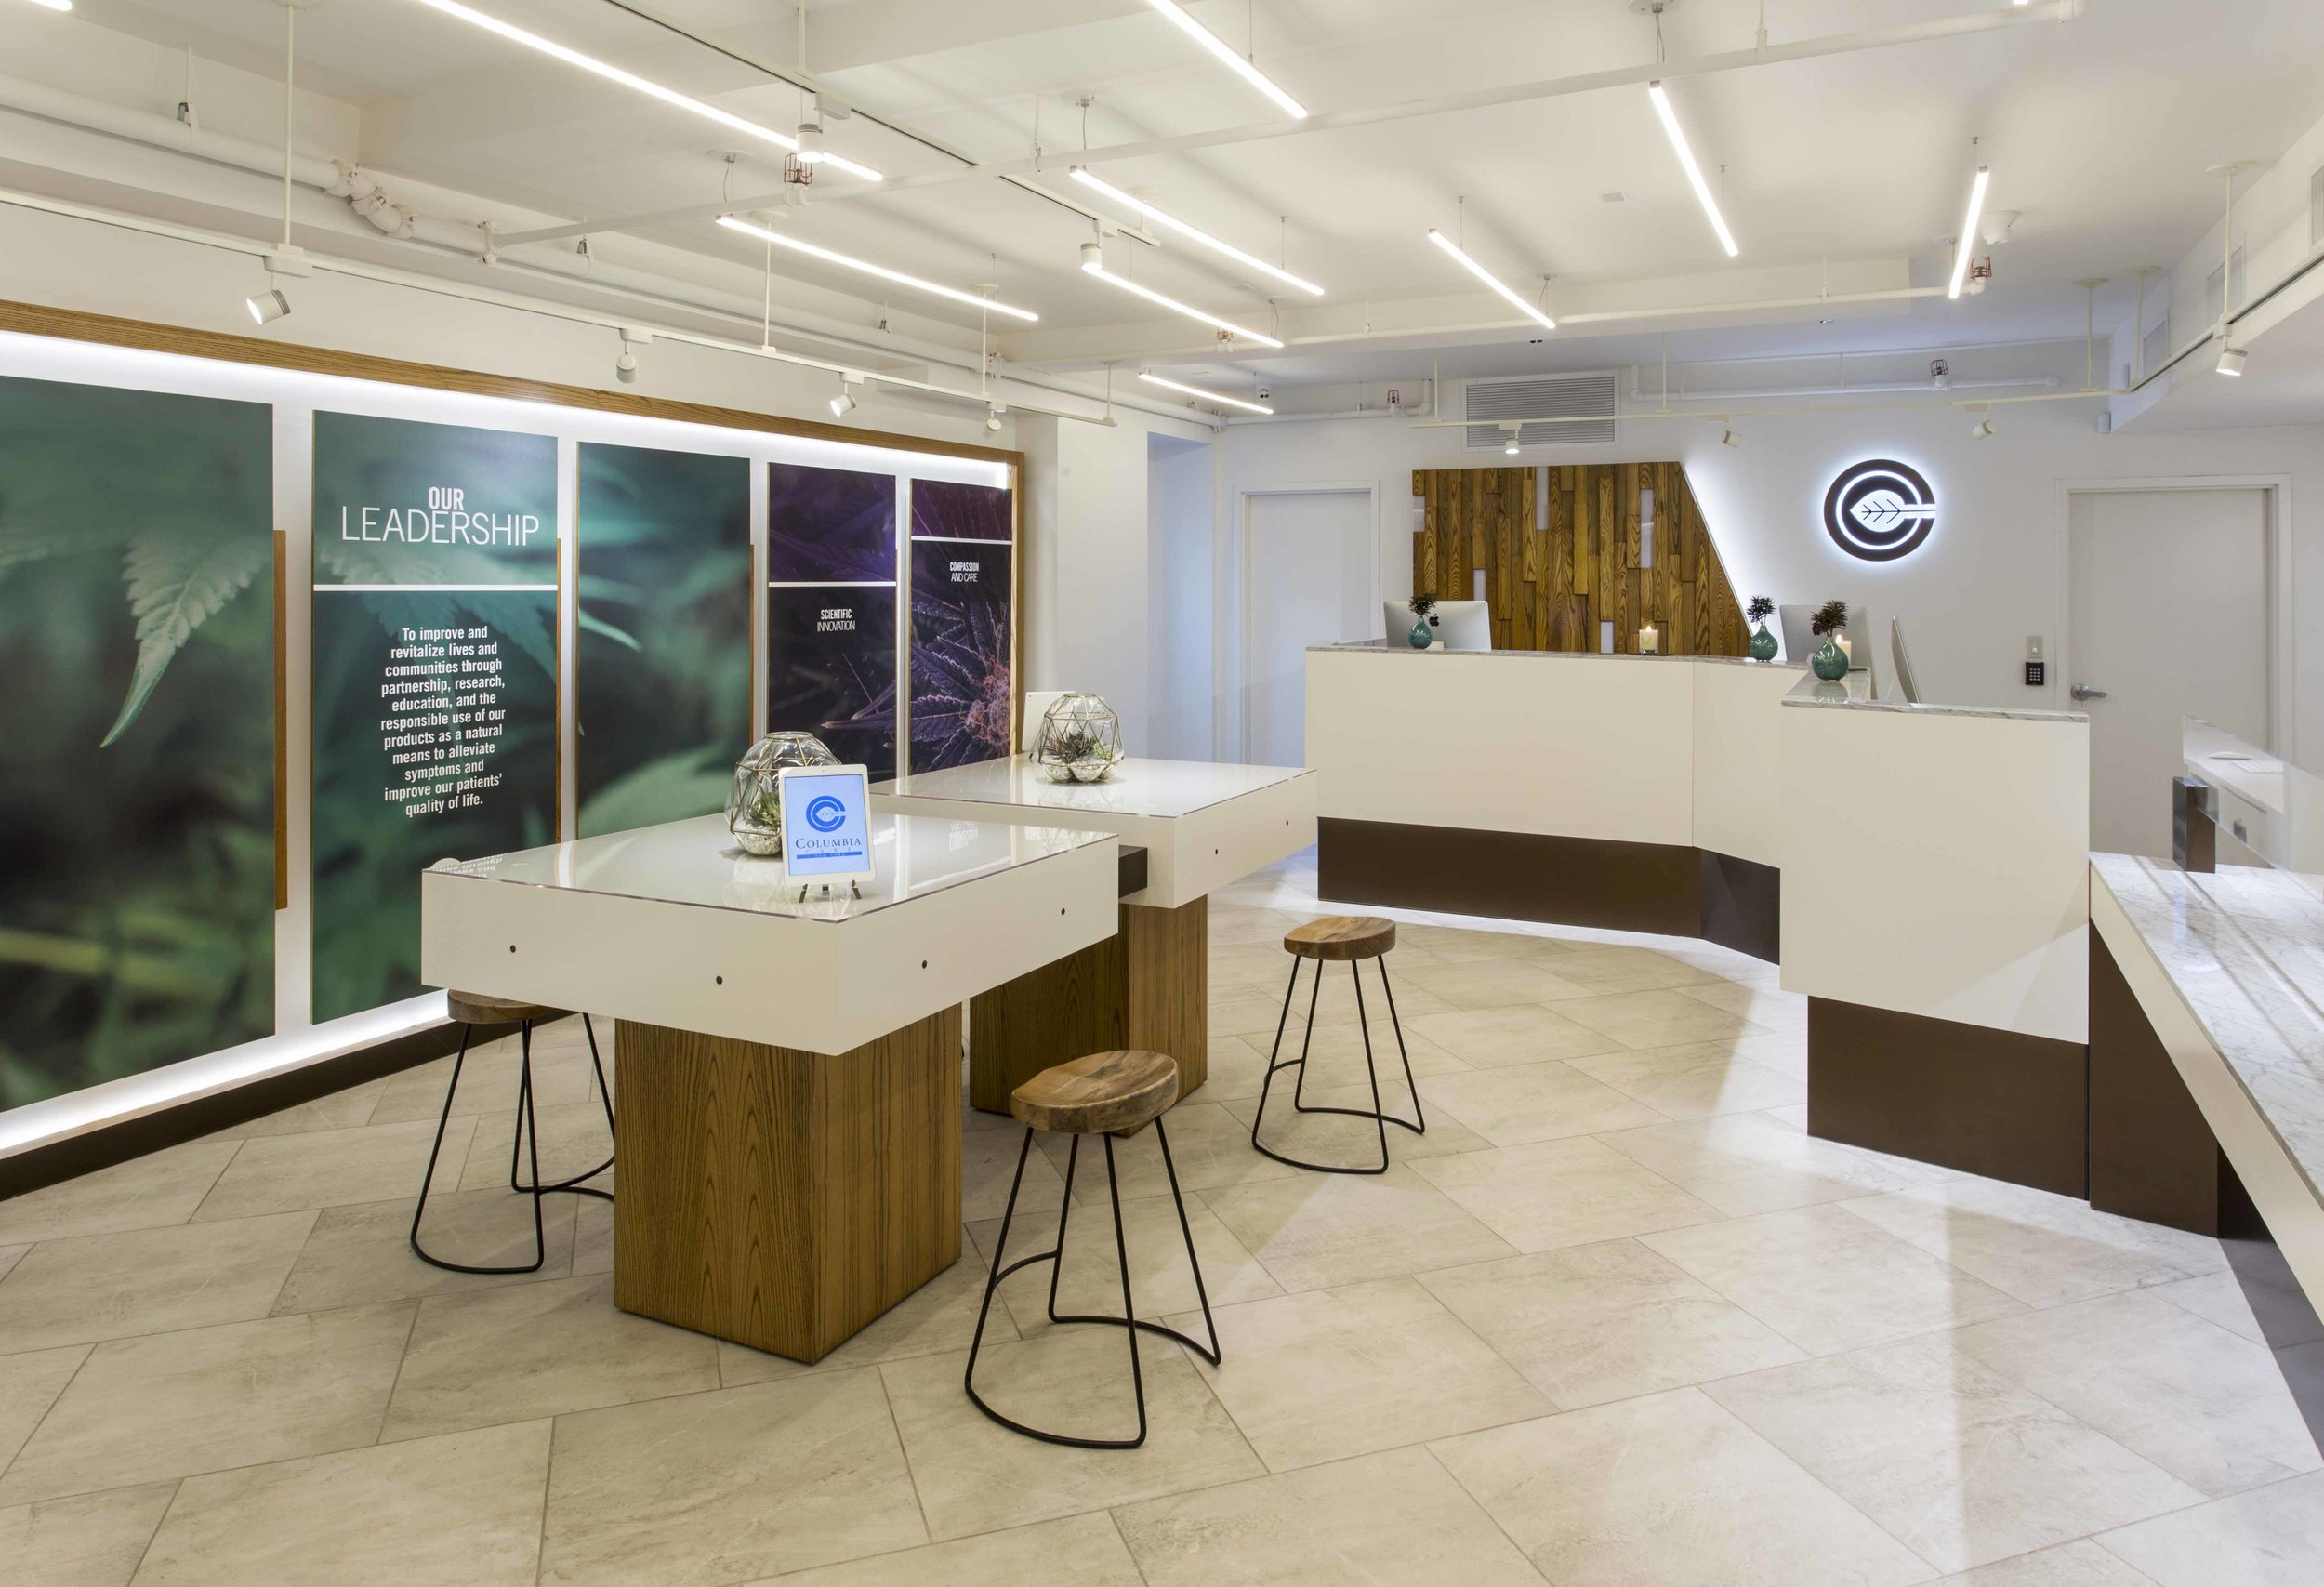 3-Columbia-Care-medical-marijuana-dispensary-evangeline-dennie.jpg